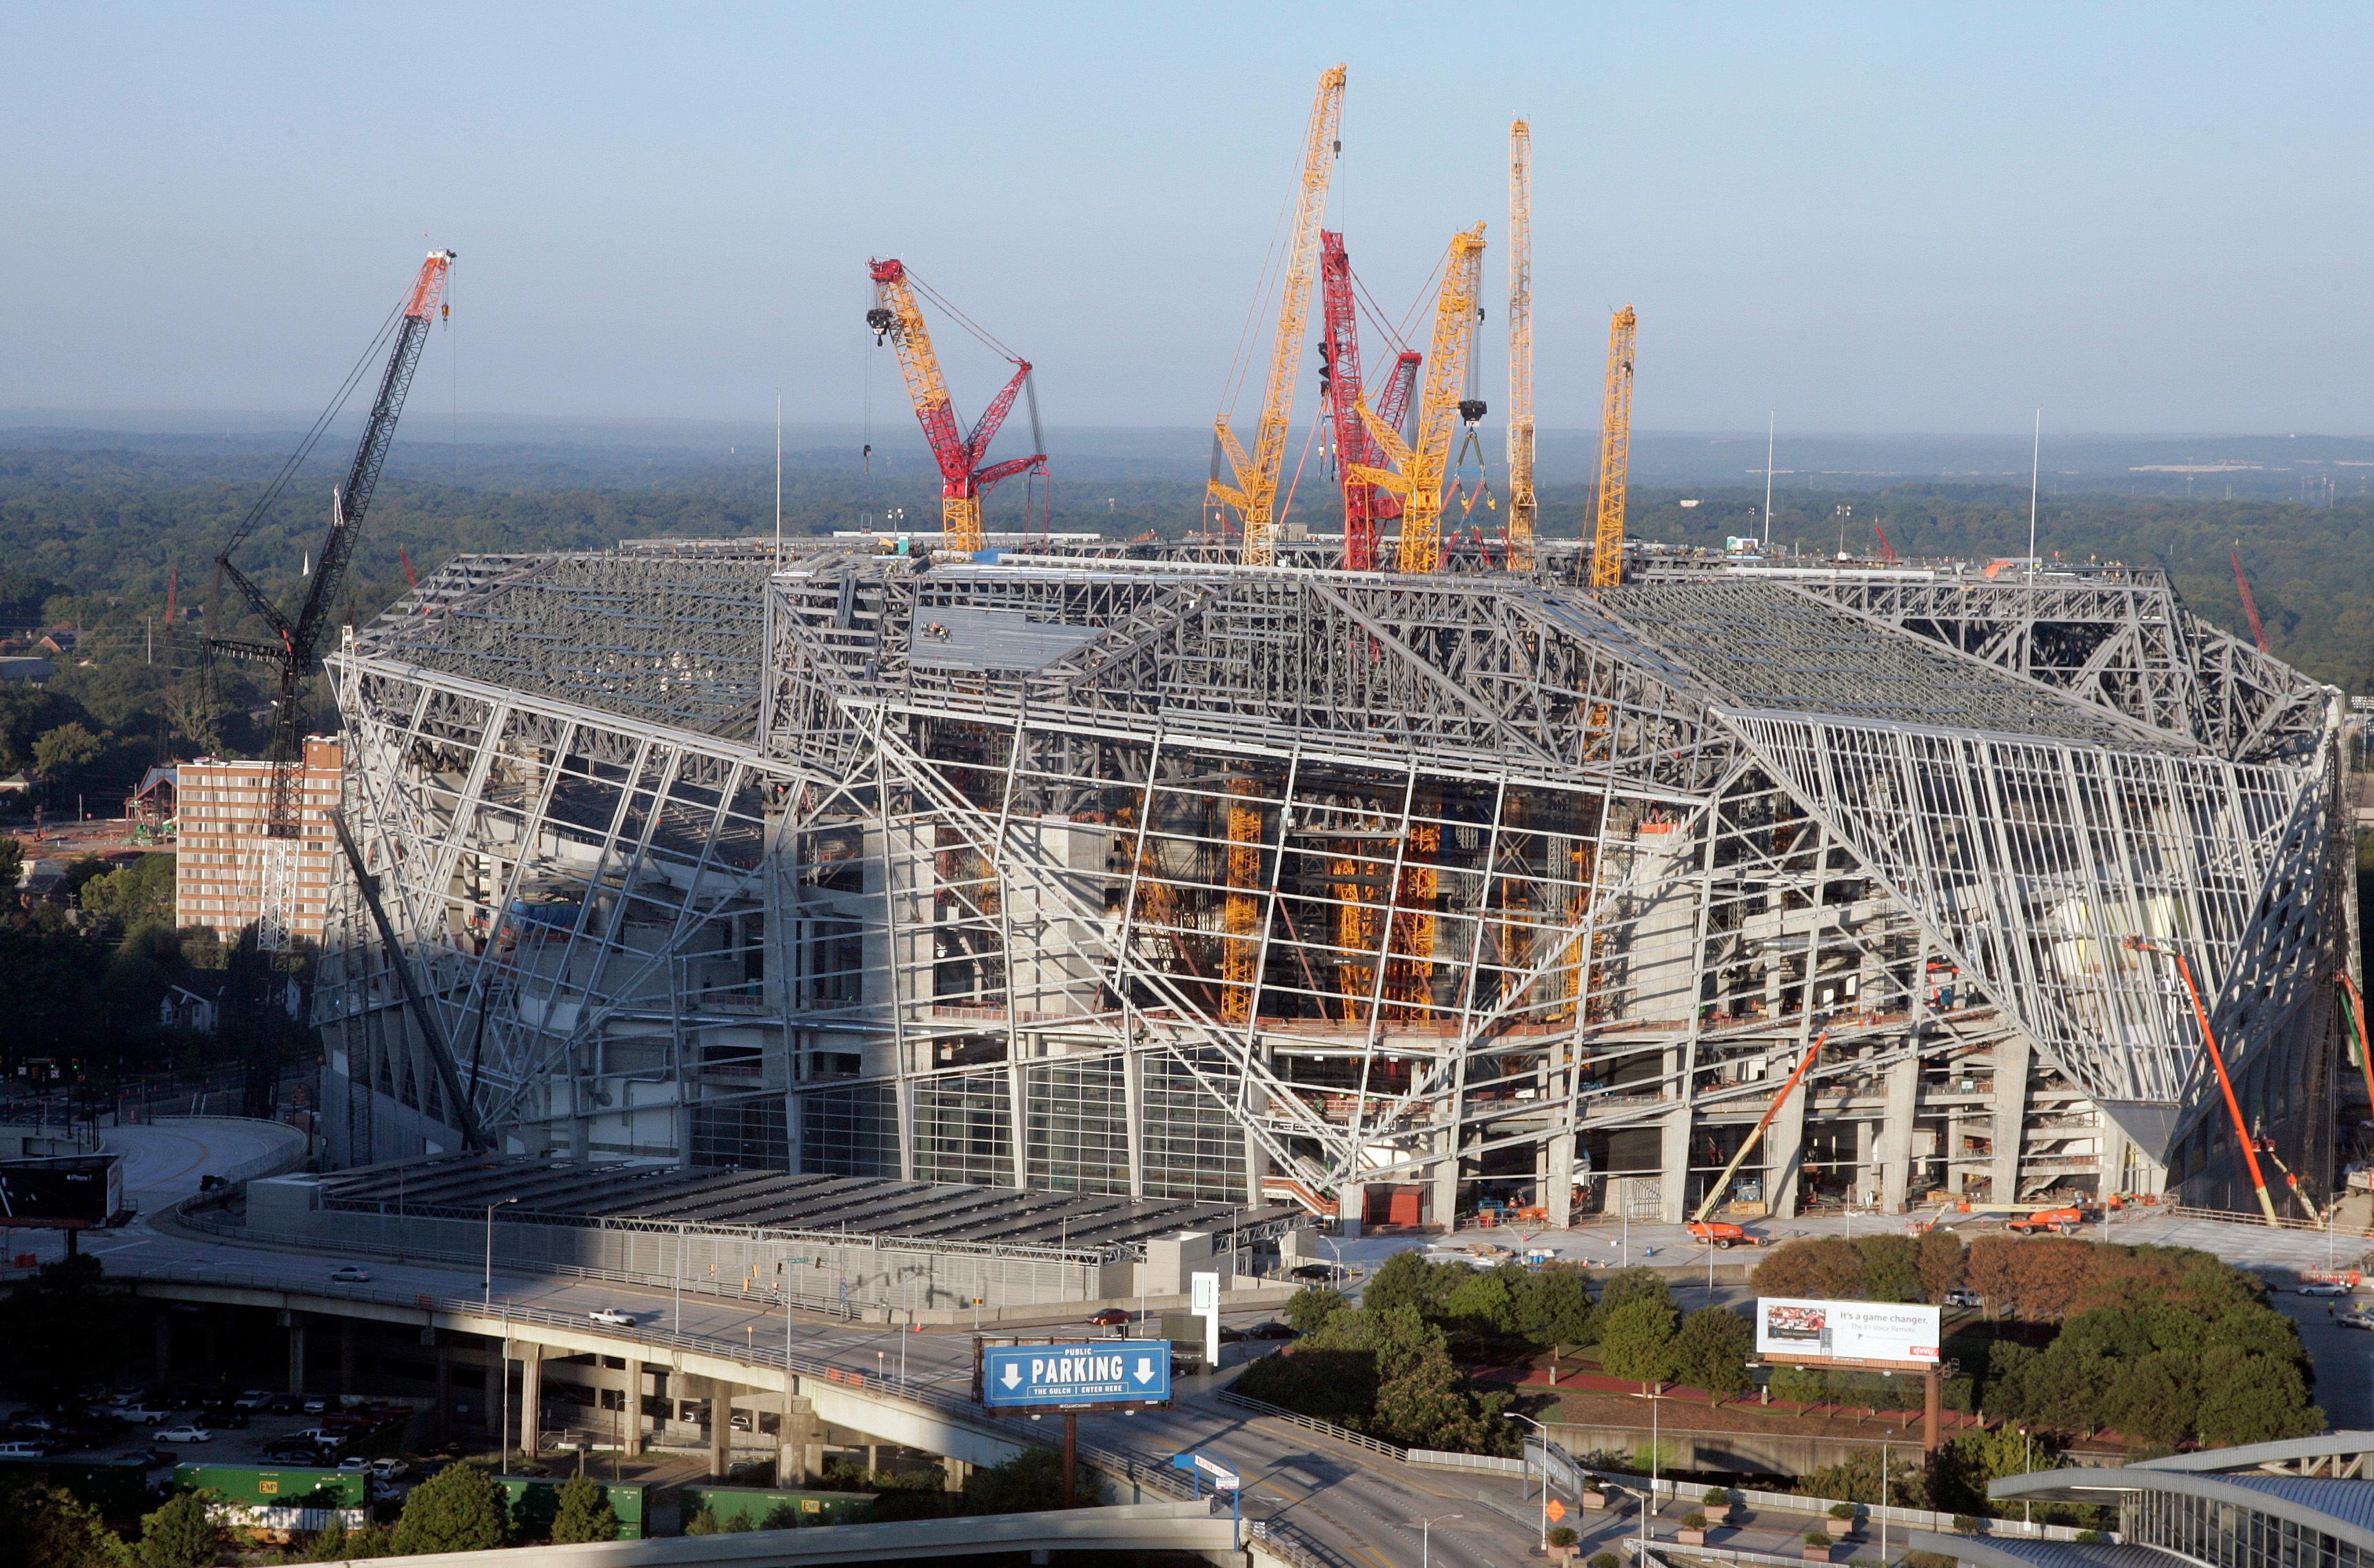 "In this Sept. 24, 2016 photo, construction crews work on the the Mercedes-Benz stadium, in Atlanta. The new $1.5 million stadium is home to the National Football League's Atlanta Falcons and Major League Soccer's Atlanta United. It features a retractable roof; a 1,100-foot ""halo board"" video display; and a giant steel sculpture of a Falcon with its 70-foot wingspan at one of the main entrances. (AP Photo/John Bazemore)"